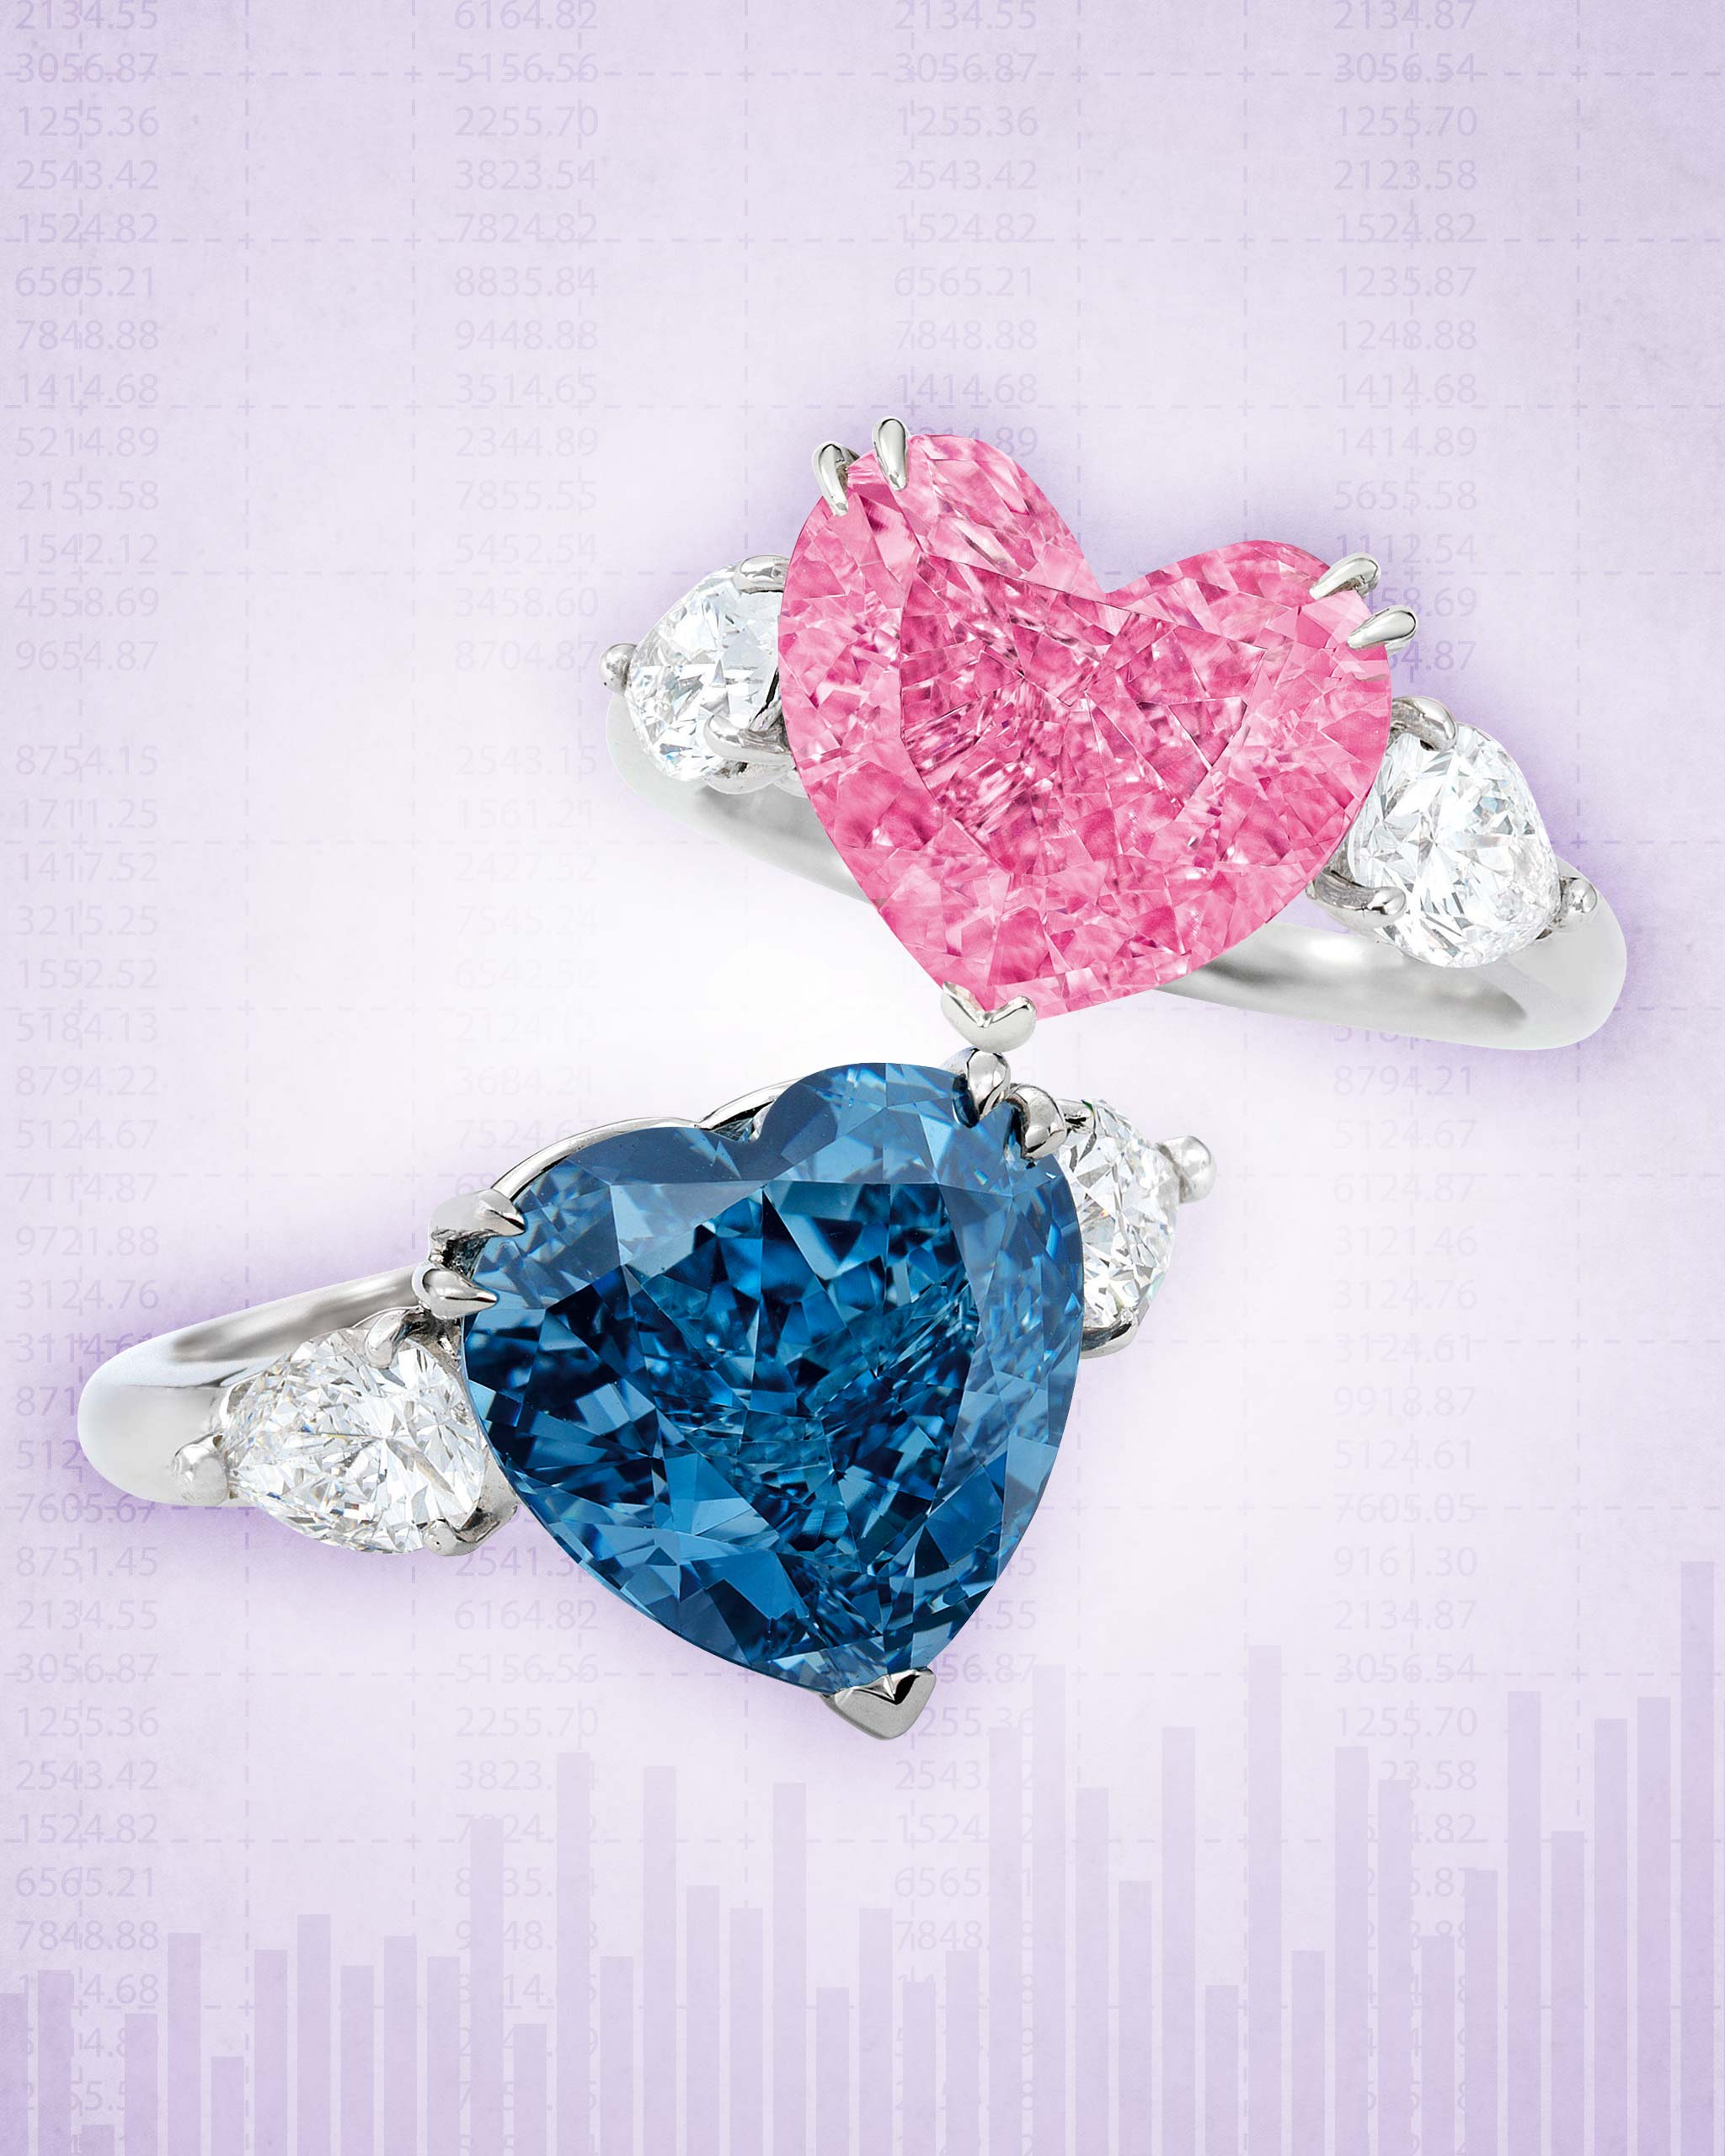 5-carat blue heart shaped diamond ring and 4-carat heart shaped pink diamond ring sold at the Sotheby's jewelry auction